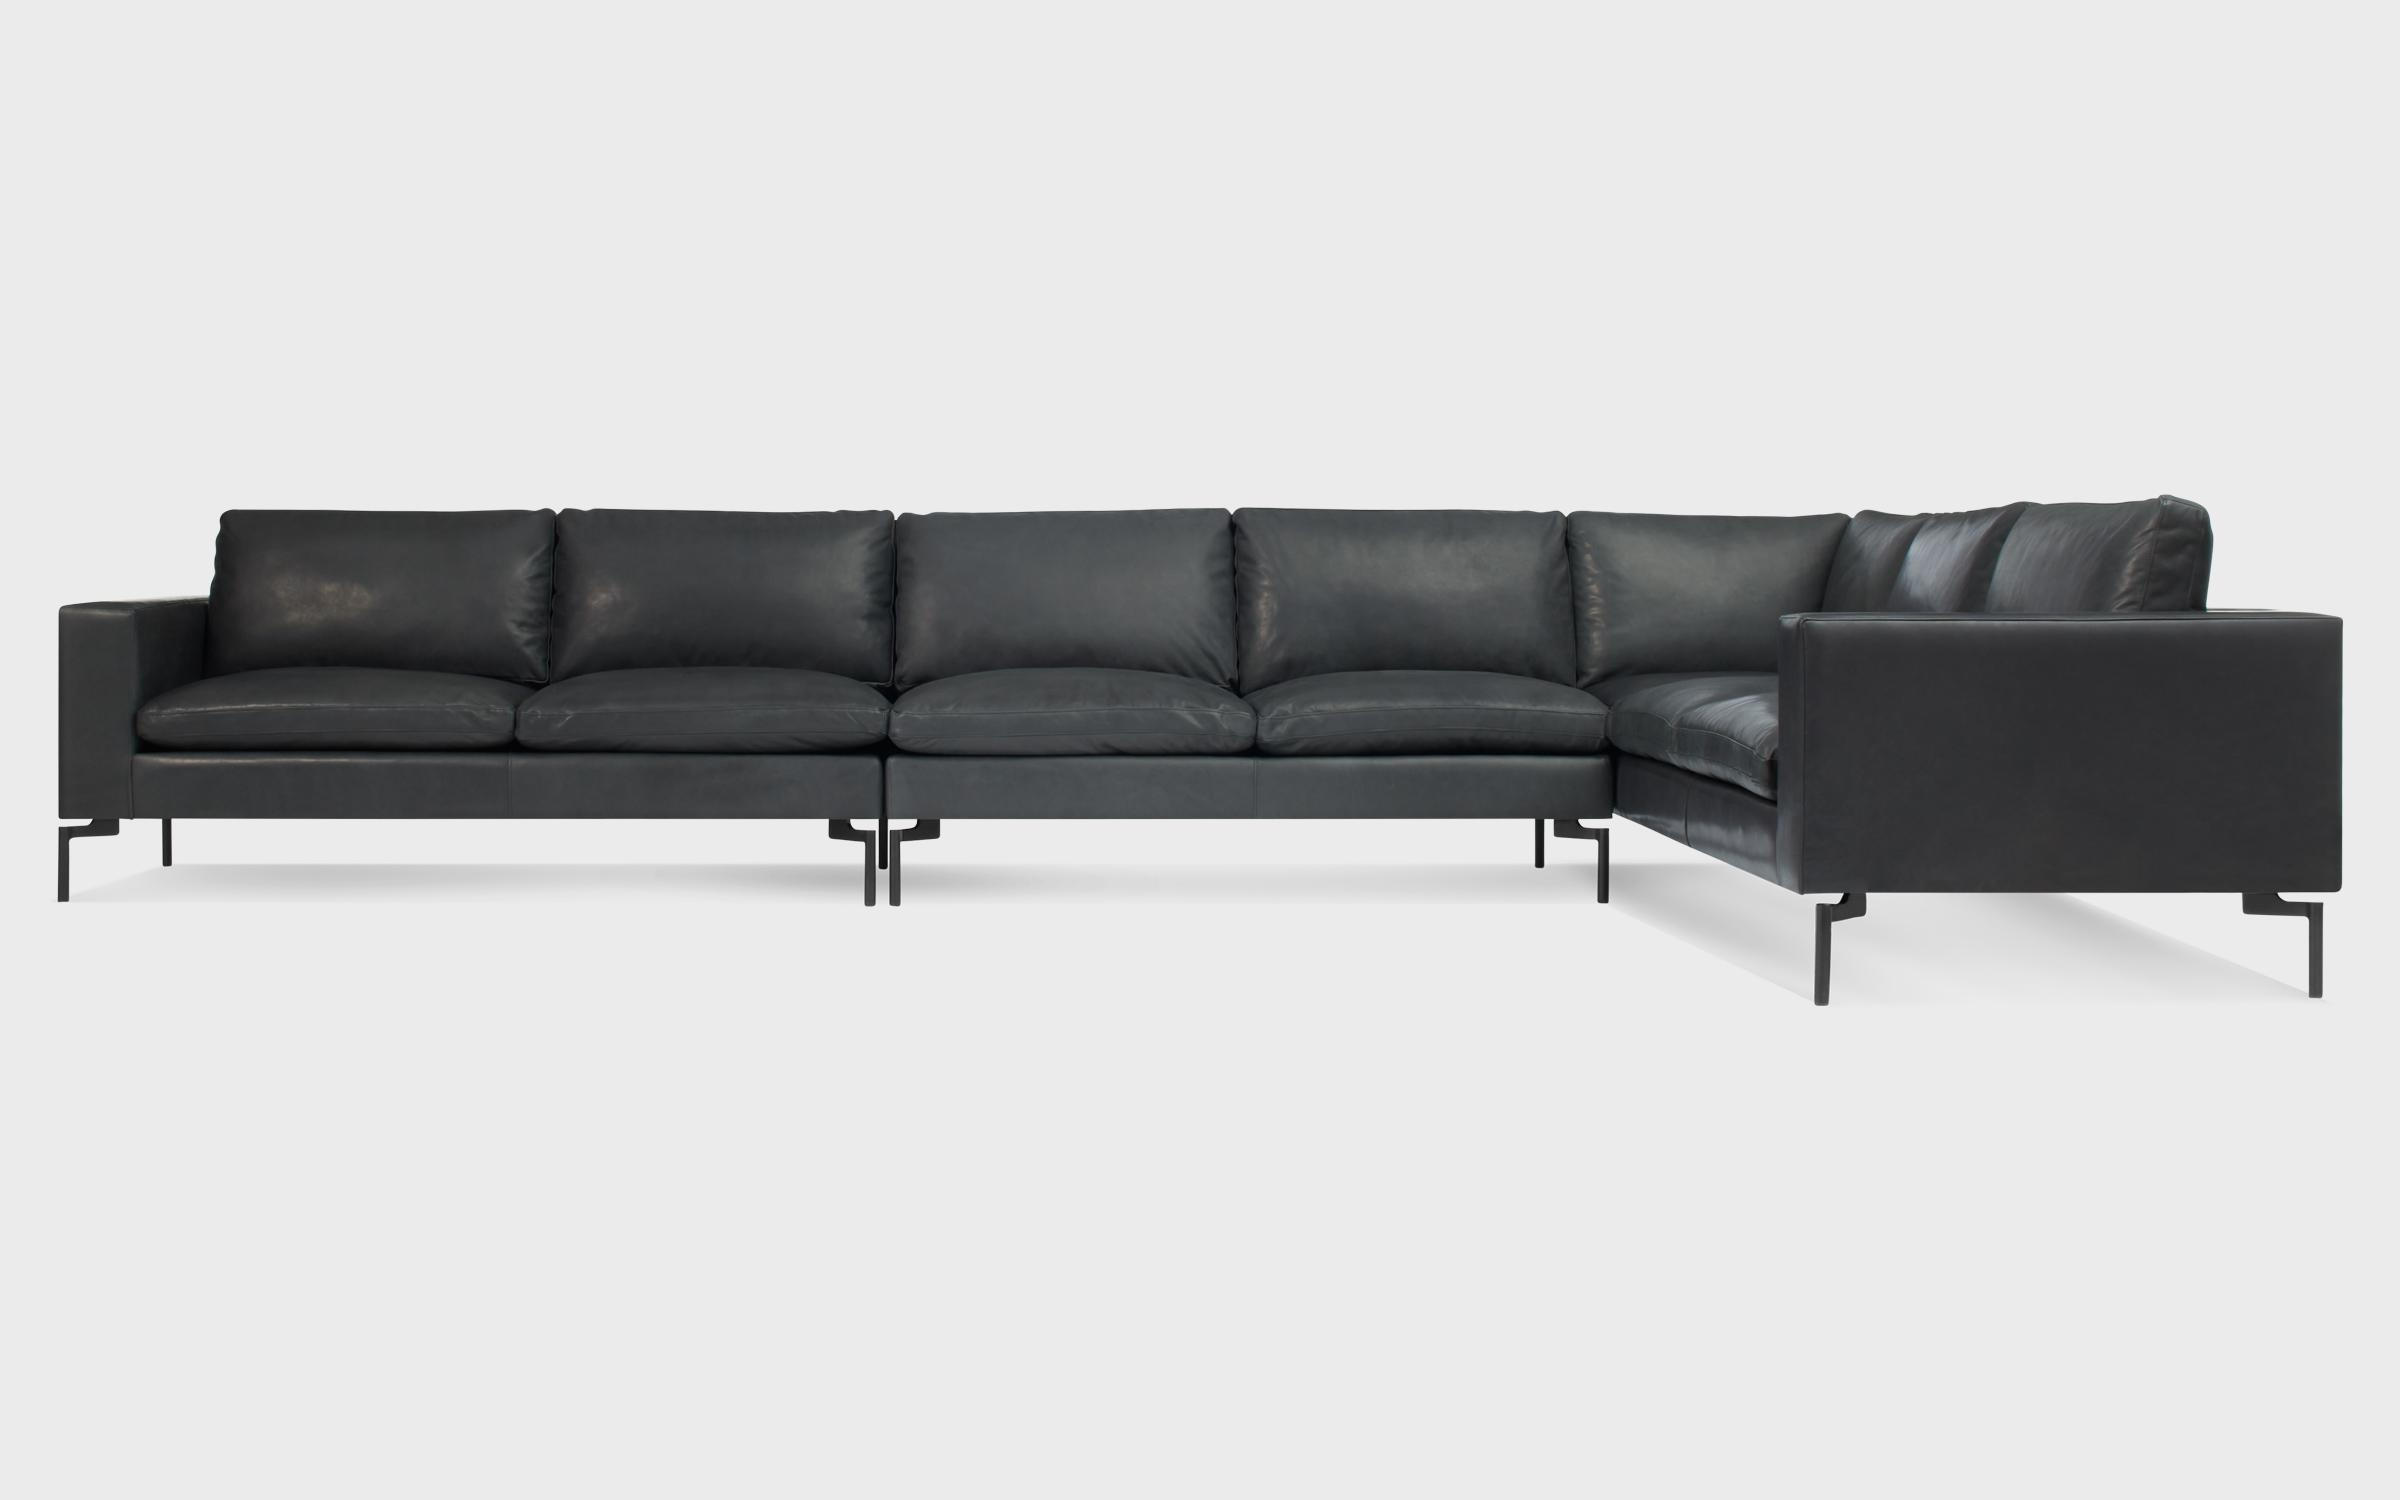 New Standard Large Leather Right Sectional Sofa | Blu Dot pertaining to High Quality Leather Sectional